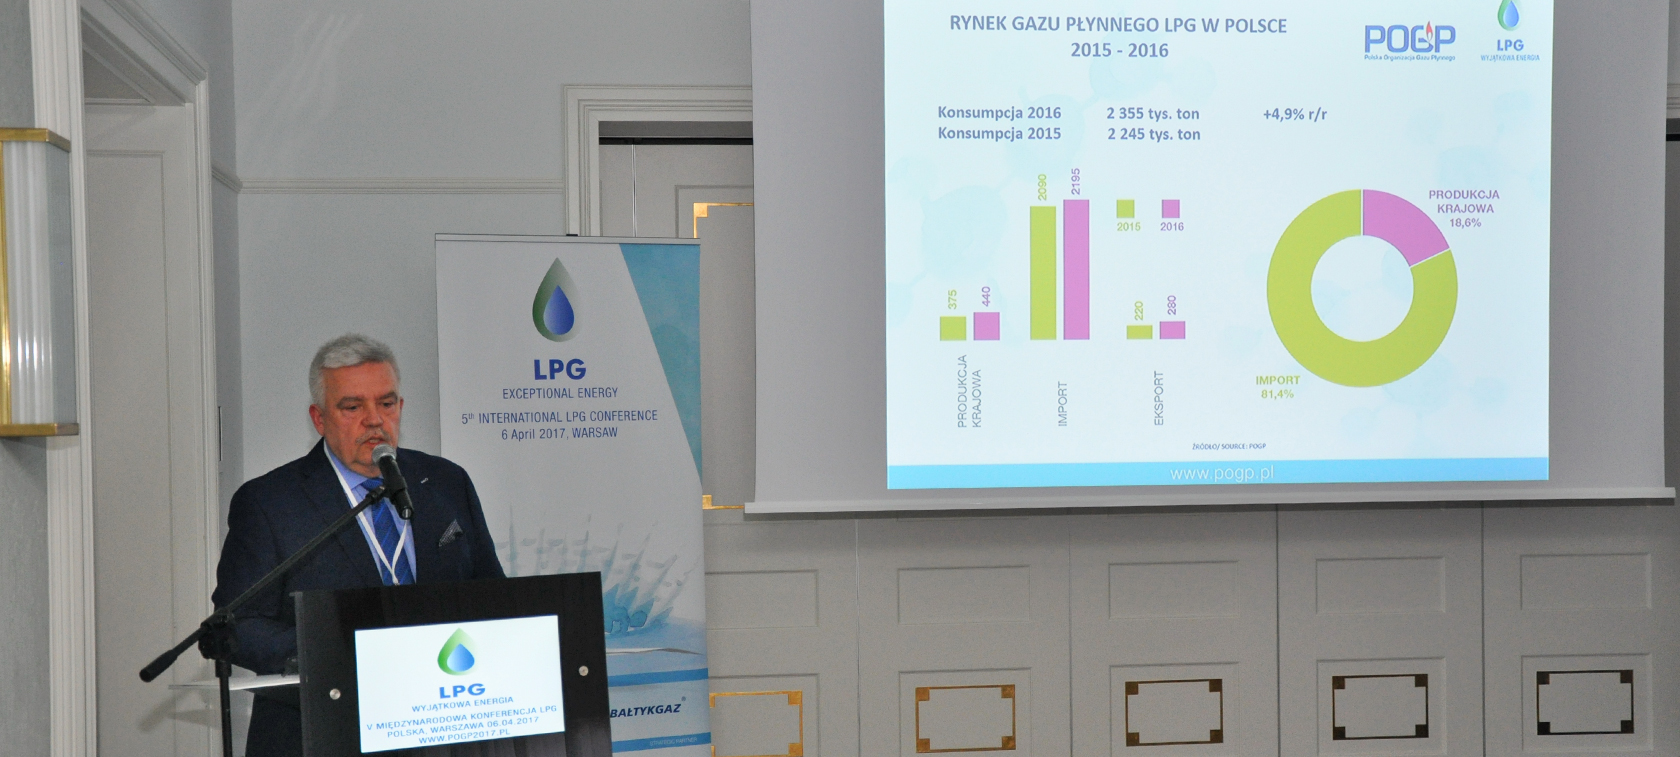 LPG - Exceptional Energy: Poland and beyond